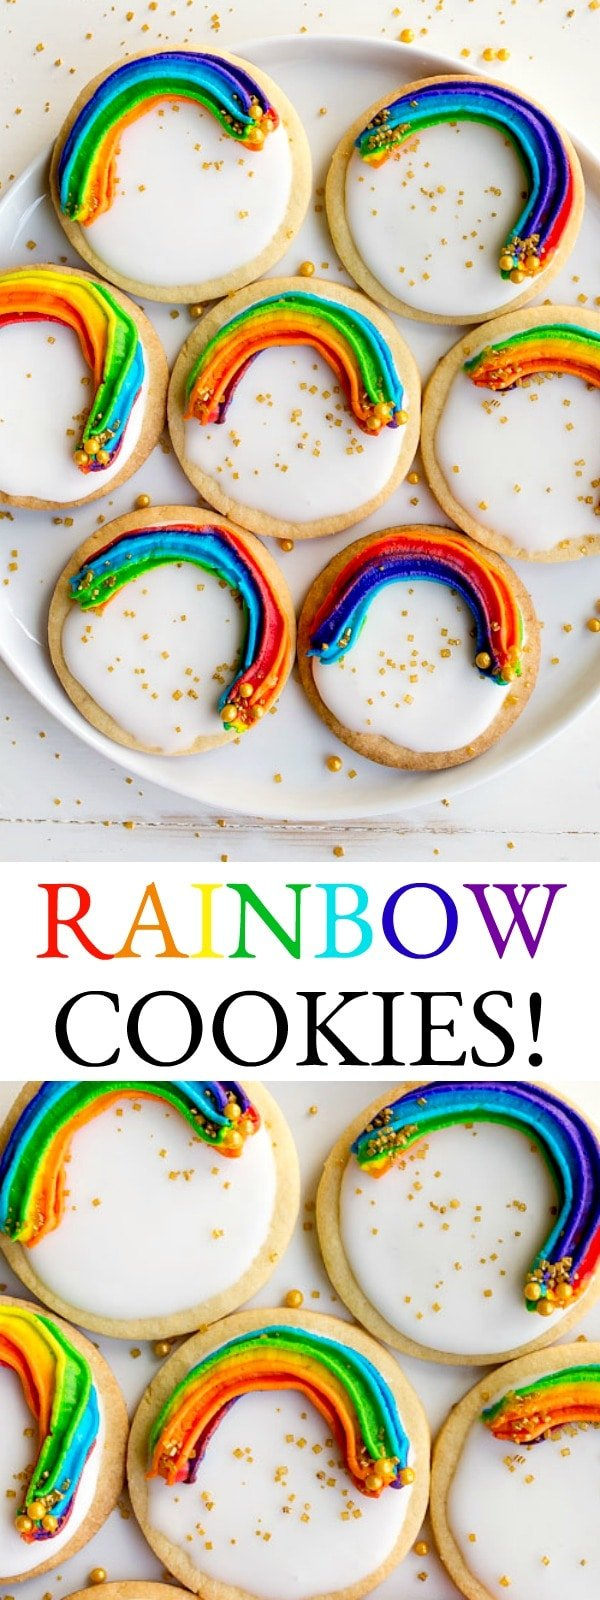 Rainbow Cookies with Rainbow Swirl Buttercream Frosting on a small batch EASY royal icing base.